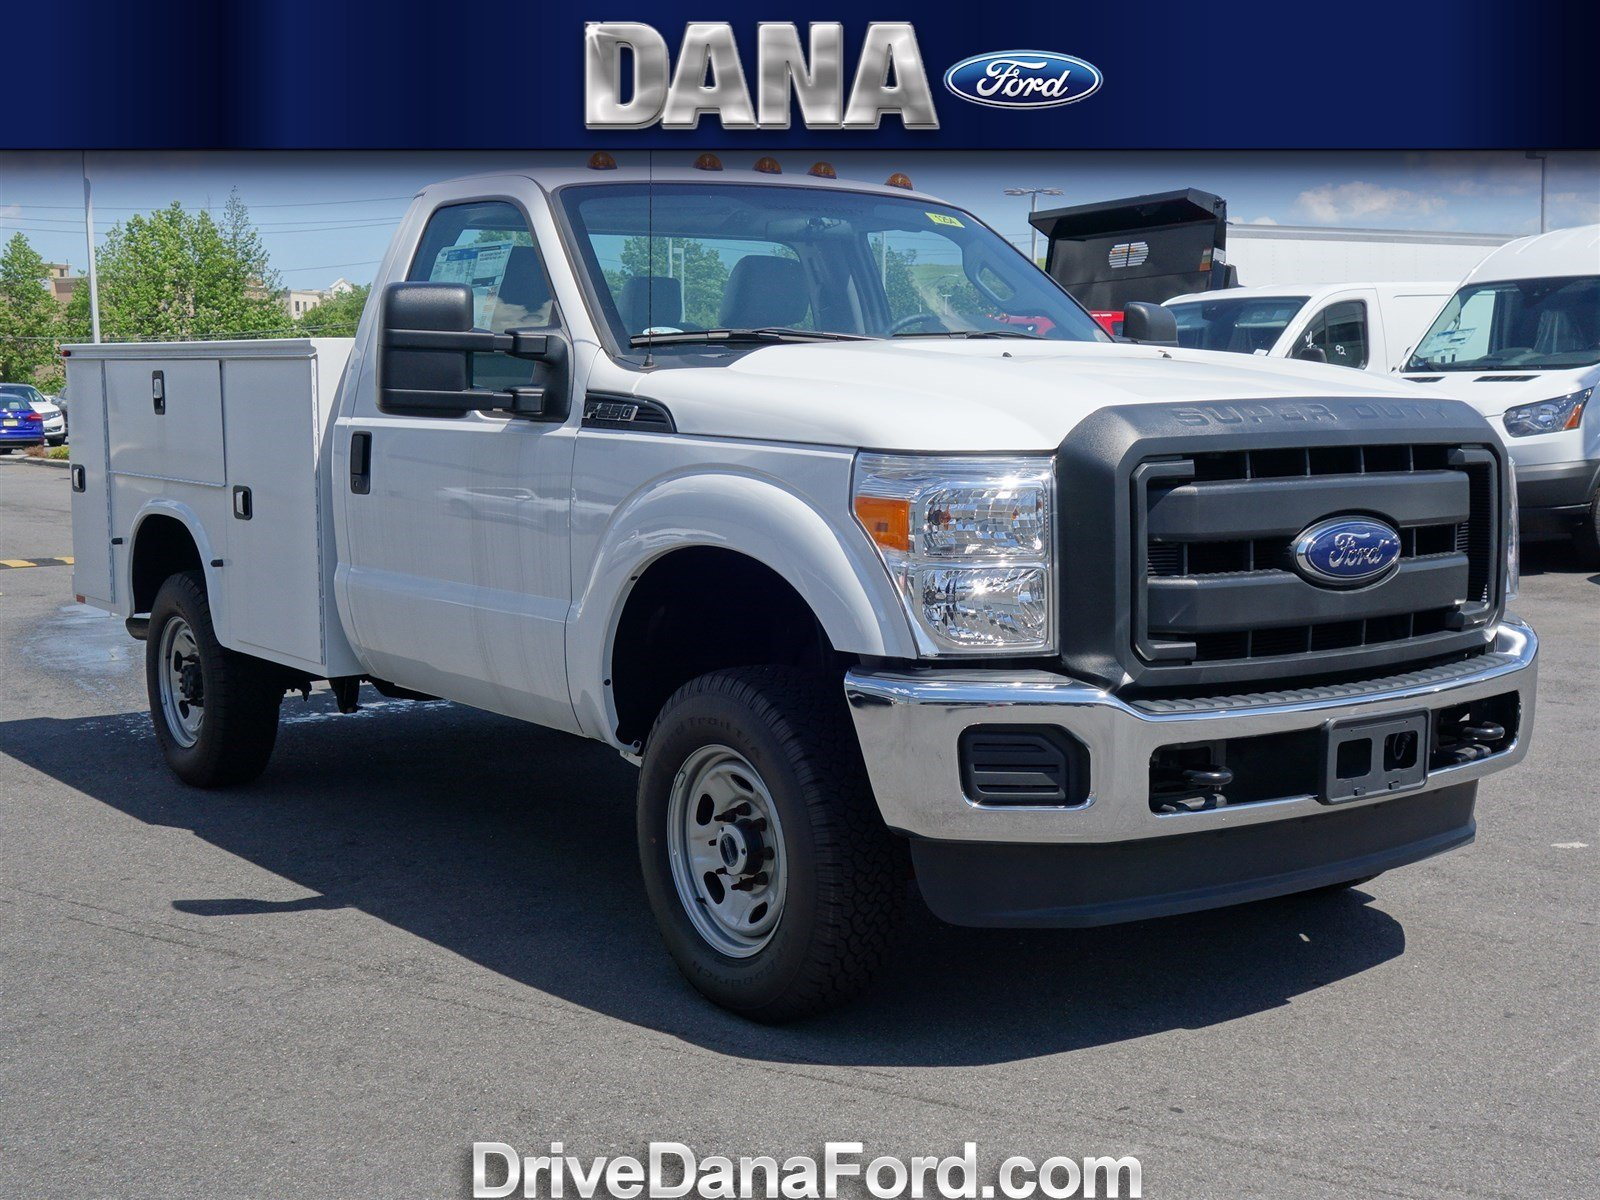 new 2016 ford f 250 xl truck in staten island a39965u dana ford. Black Bedroom Furniture Sets. Home Design Ideas